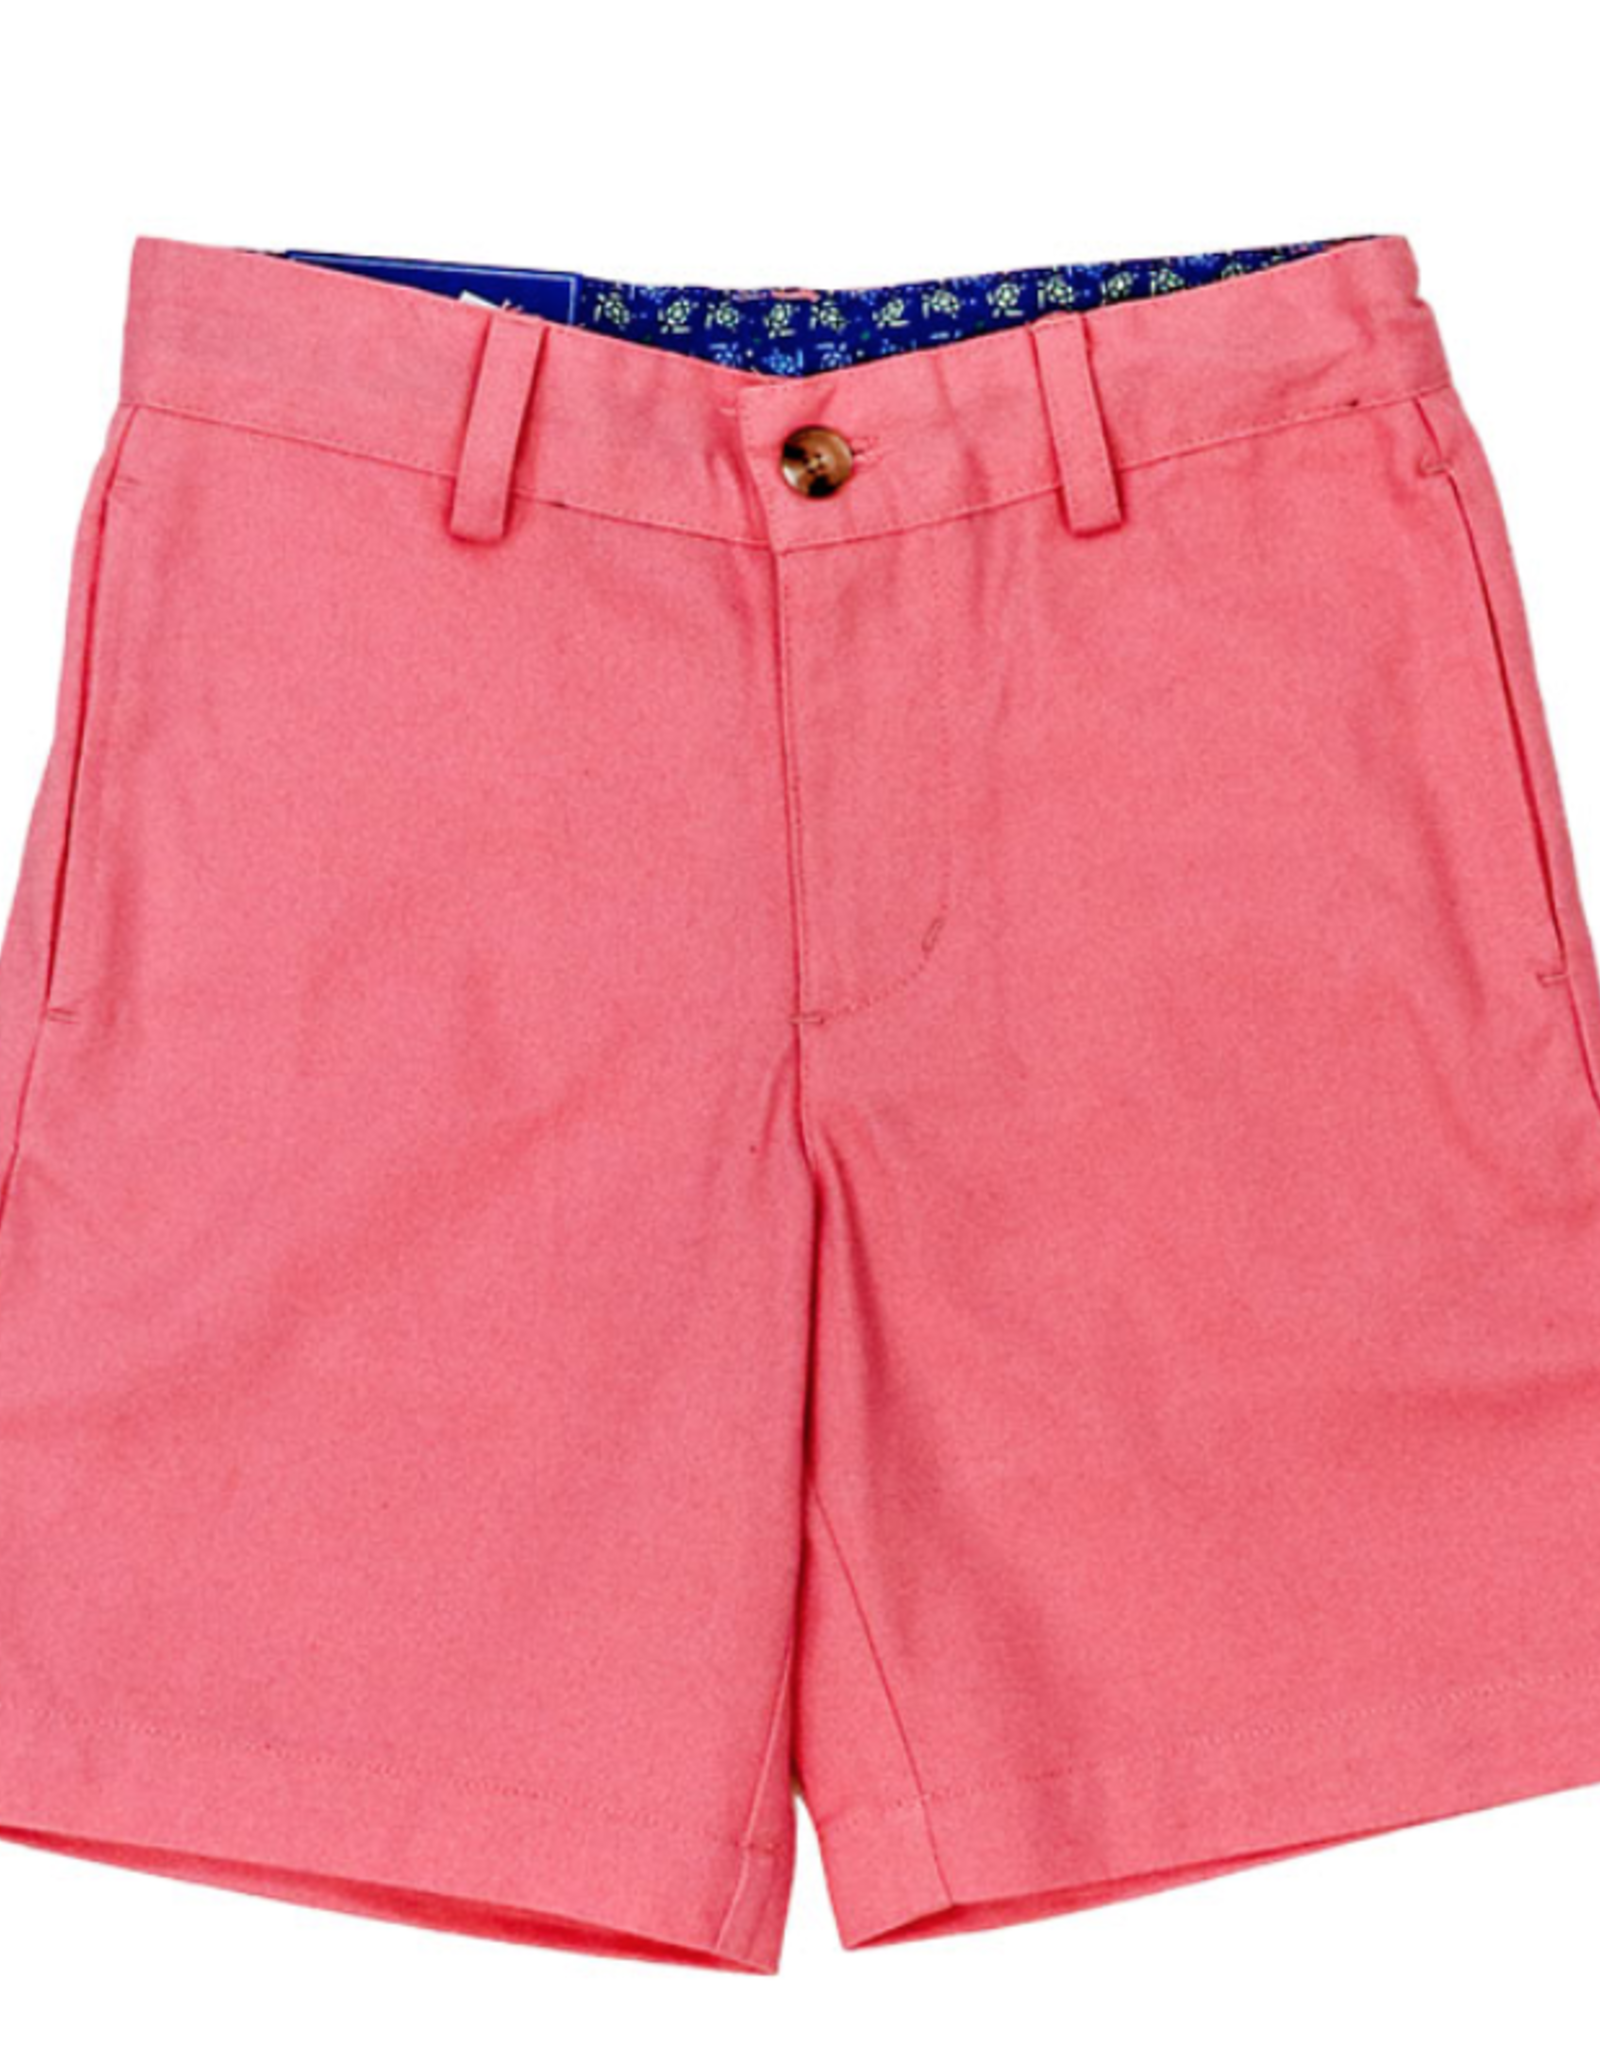 The Bailey Boys Shrimp Twill Shorts